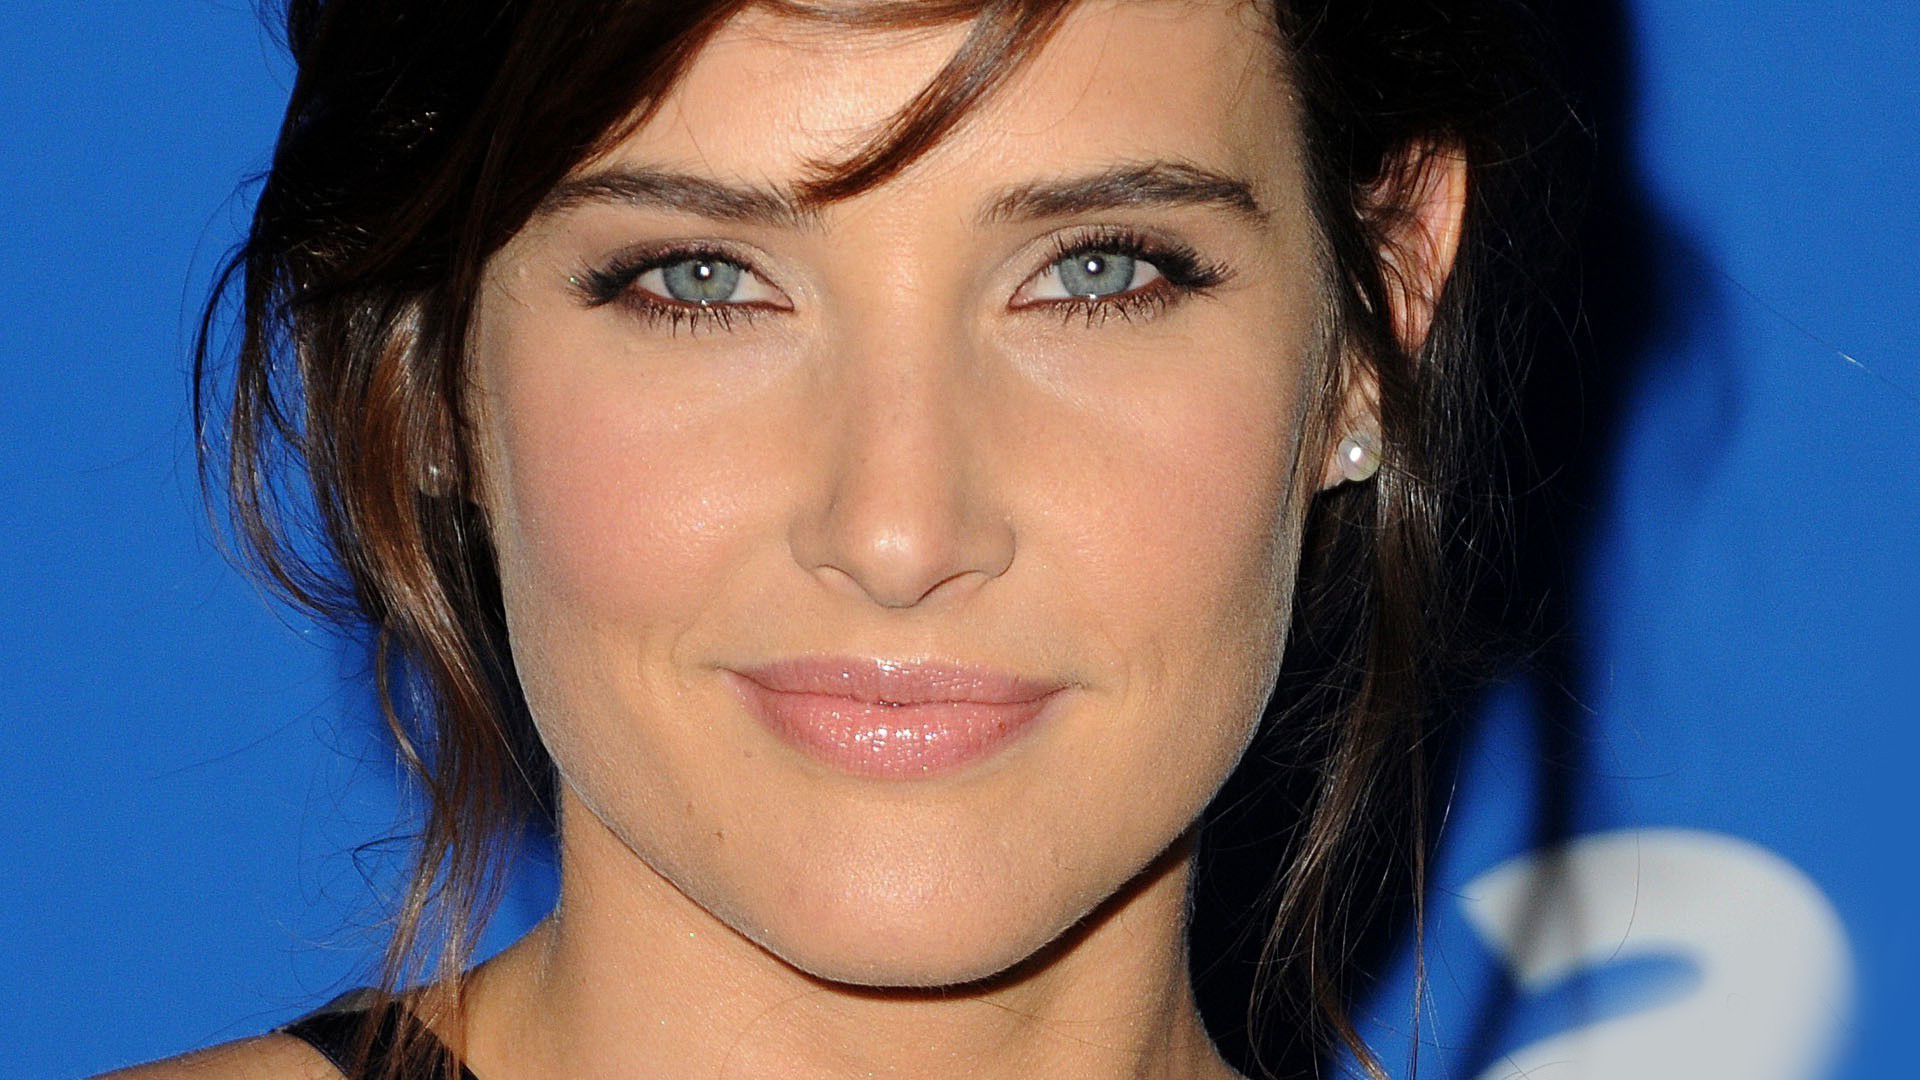 Old Woman Face Cobie Smulders HD Wall...